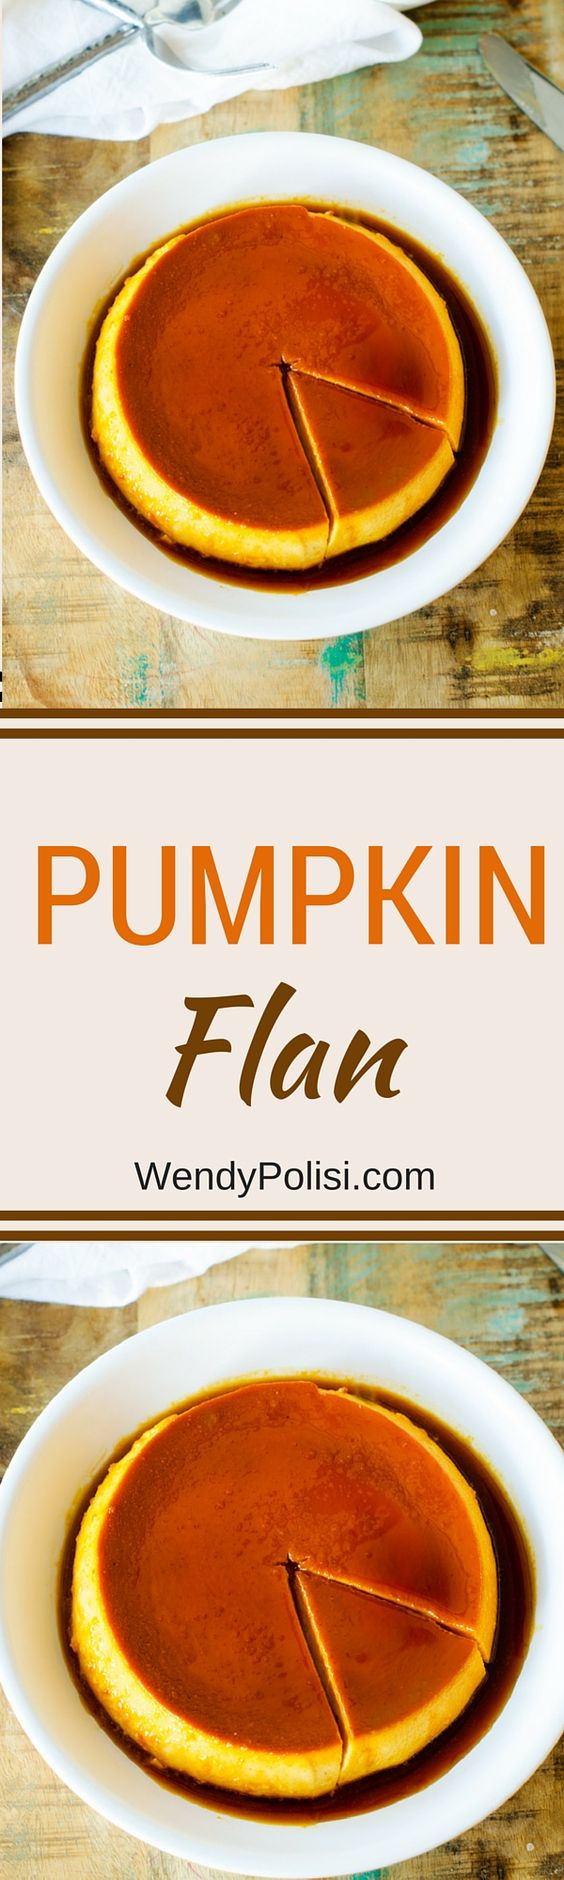 flan pumpkin pumpkin flan recipe and more seasons pumpkins gluten flan ...